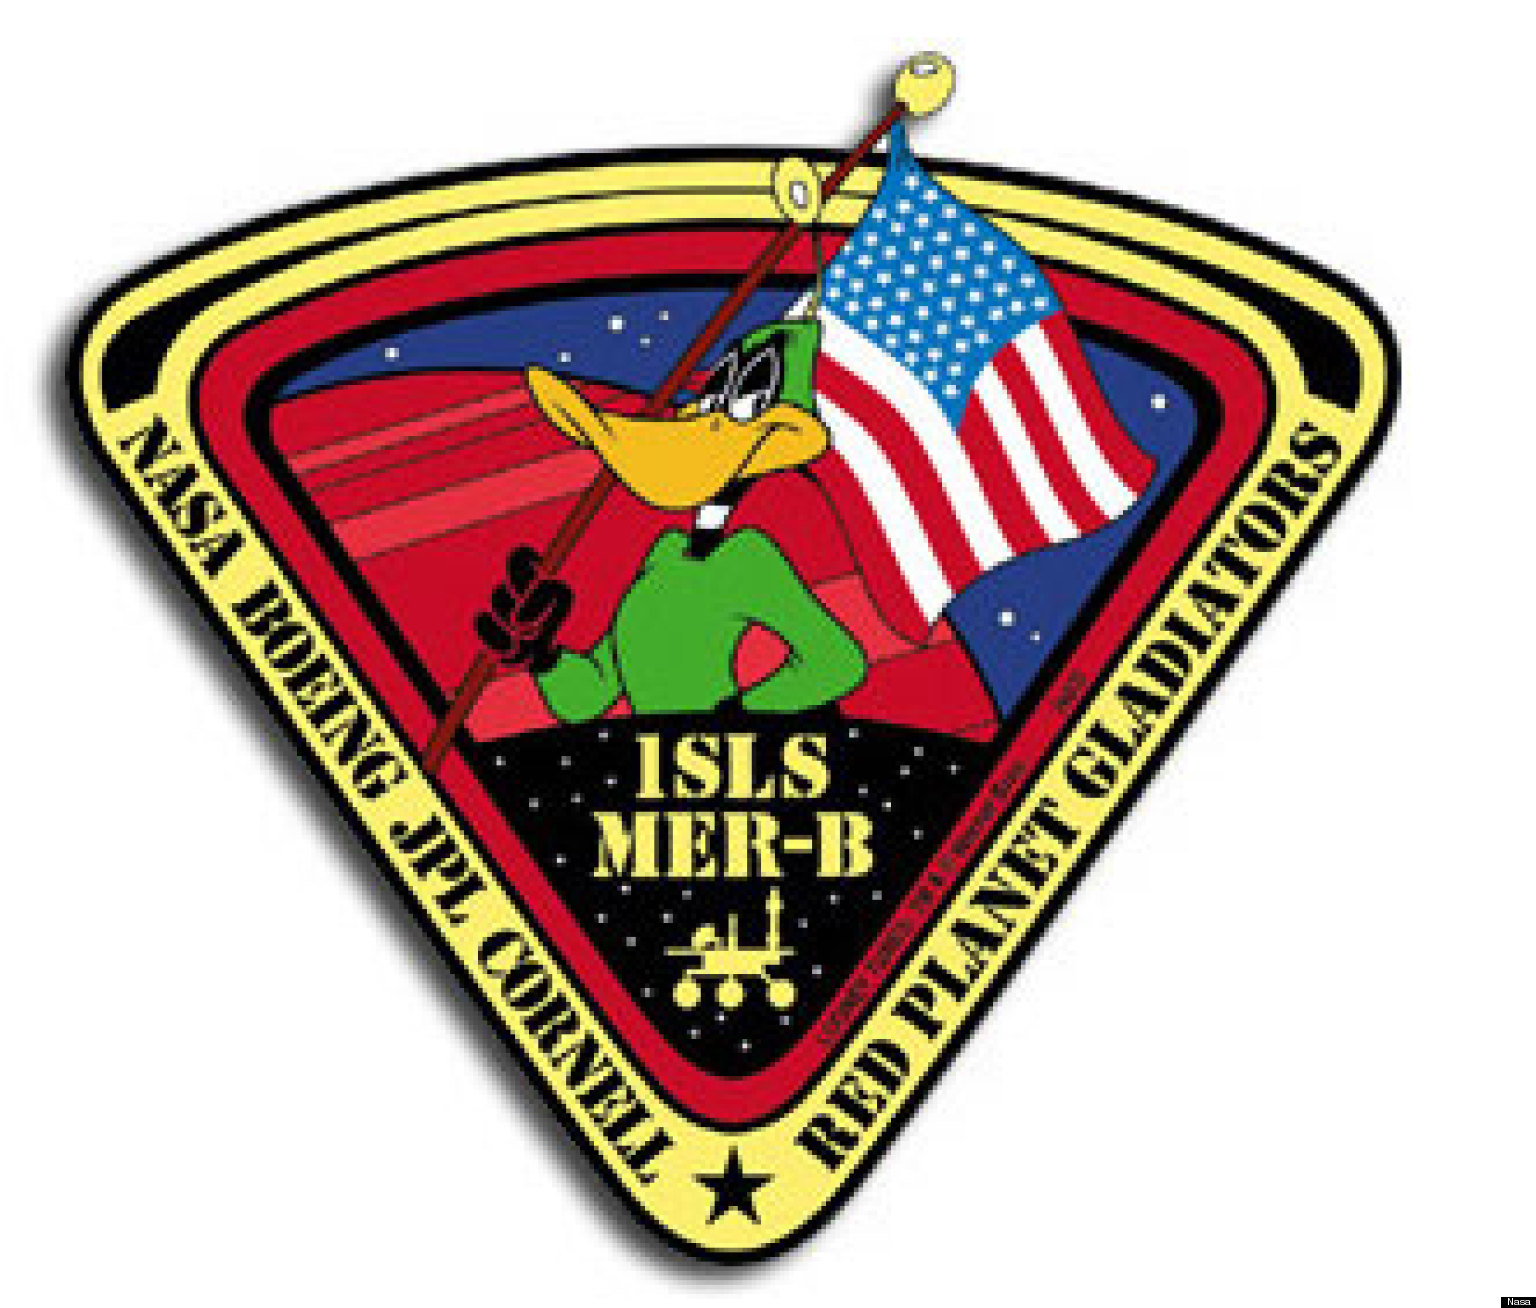 mars exploration rover mission patch - photo #25